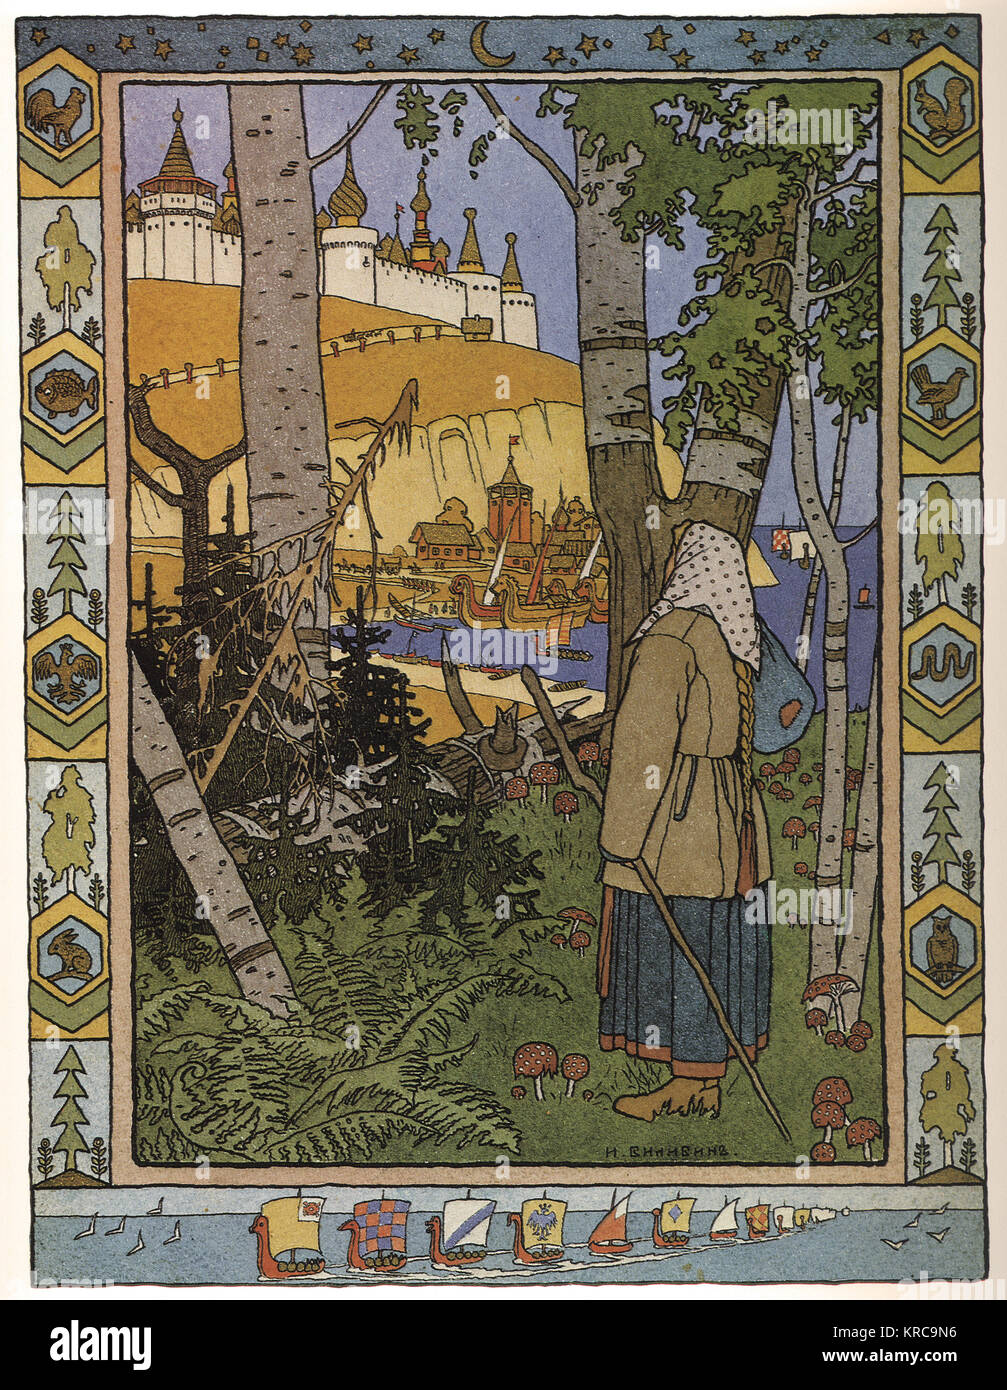 Ivan BILIBIN - illustration for the russian fairy story feather of finist falcon 1900 - Stock Image